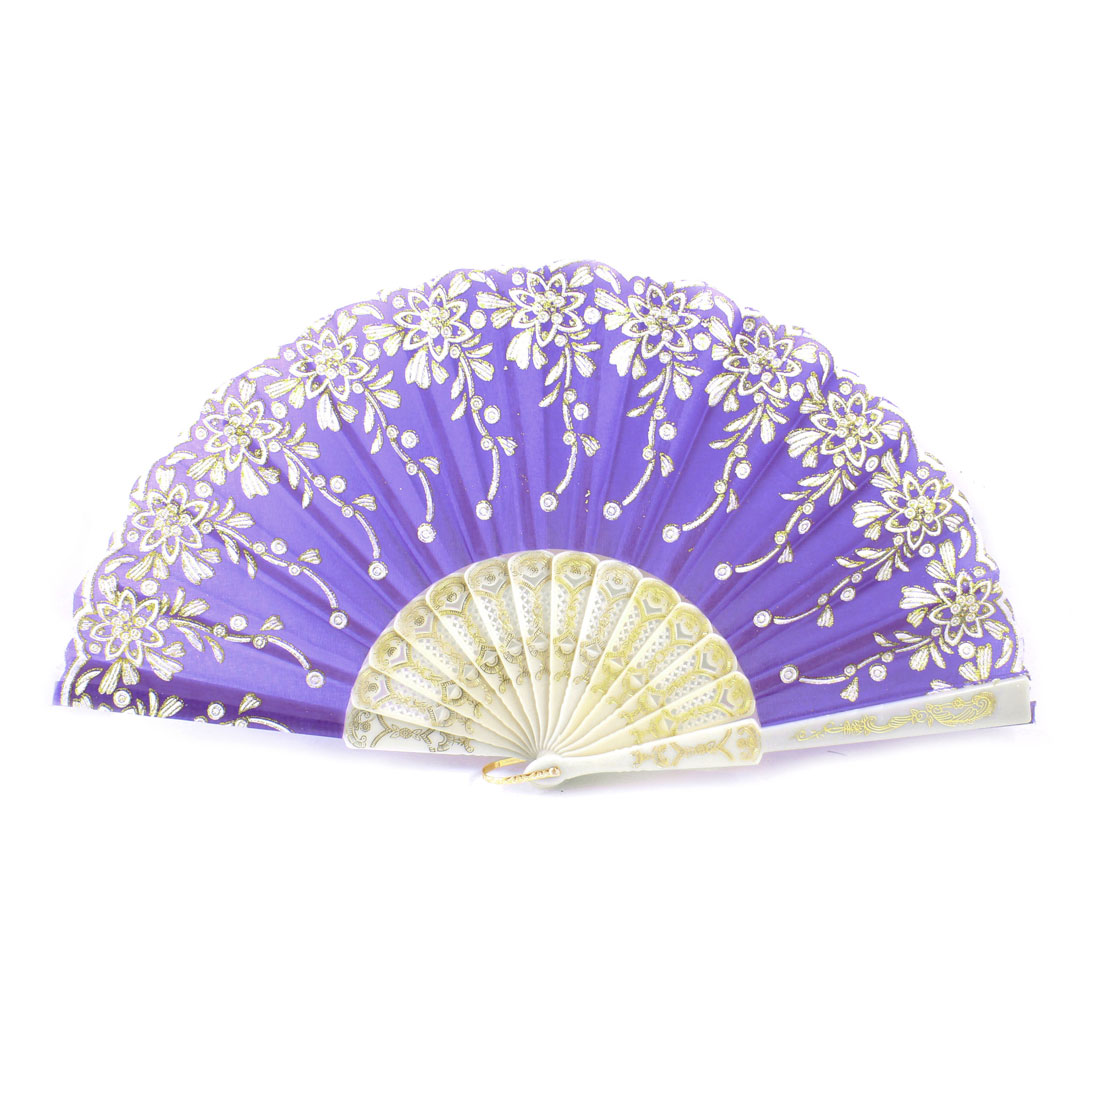 Plastic Rib Gold Tone Glittery Powder Detail Flower Pattern Foldable Hand Fan Purple White